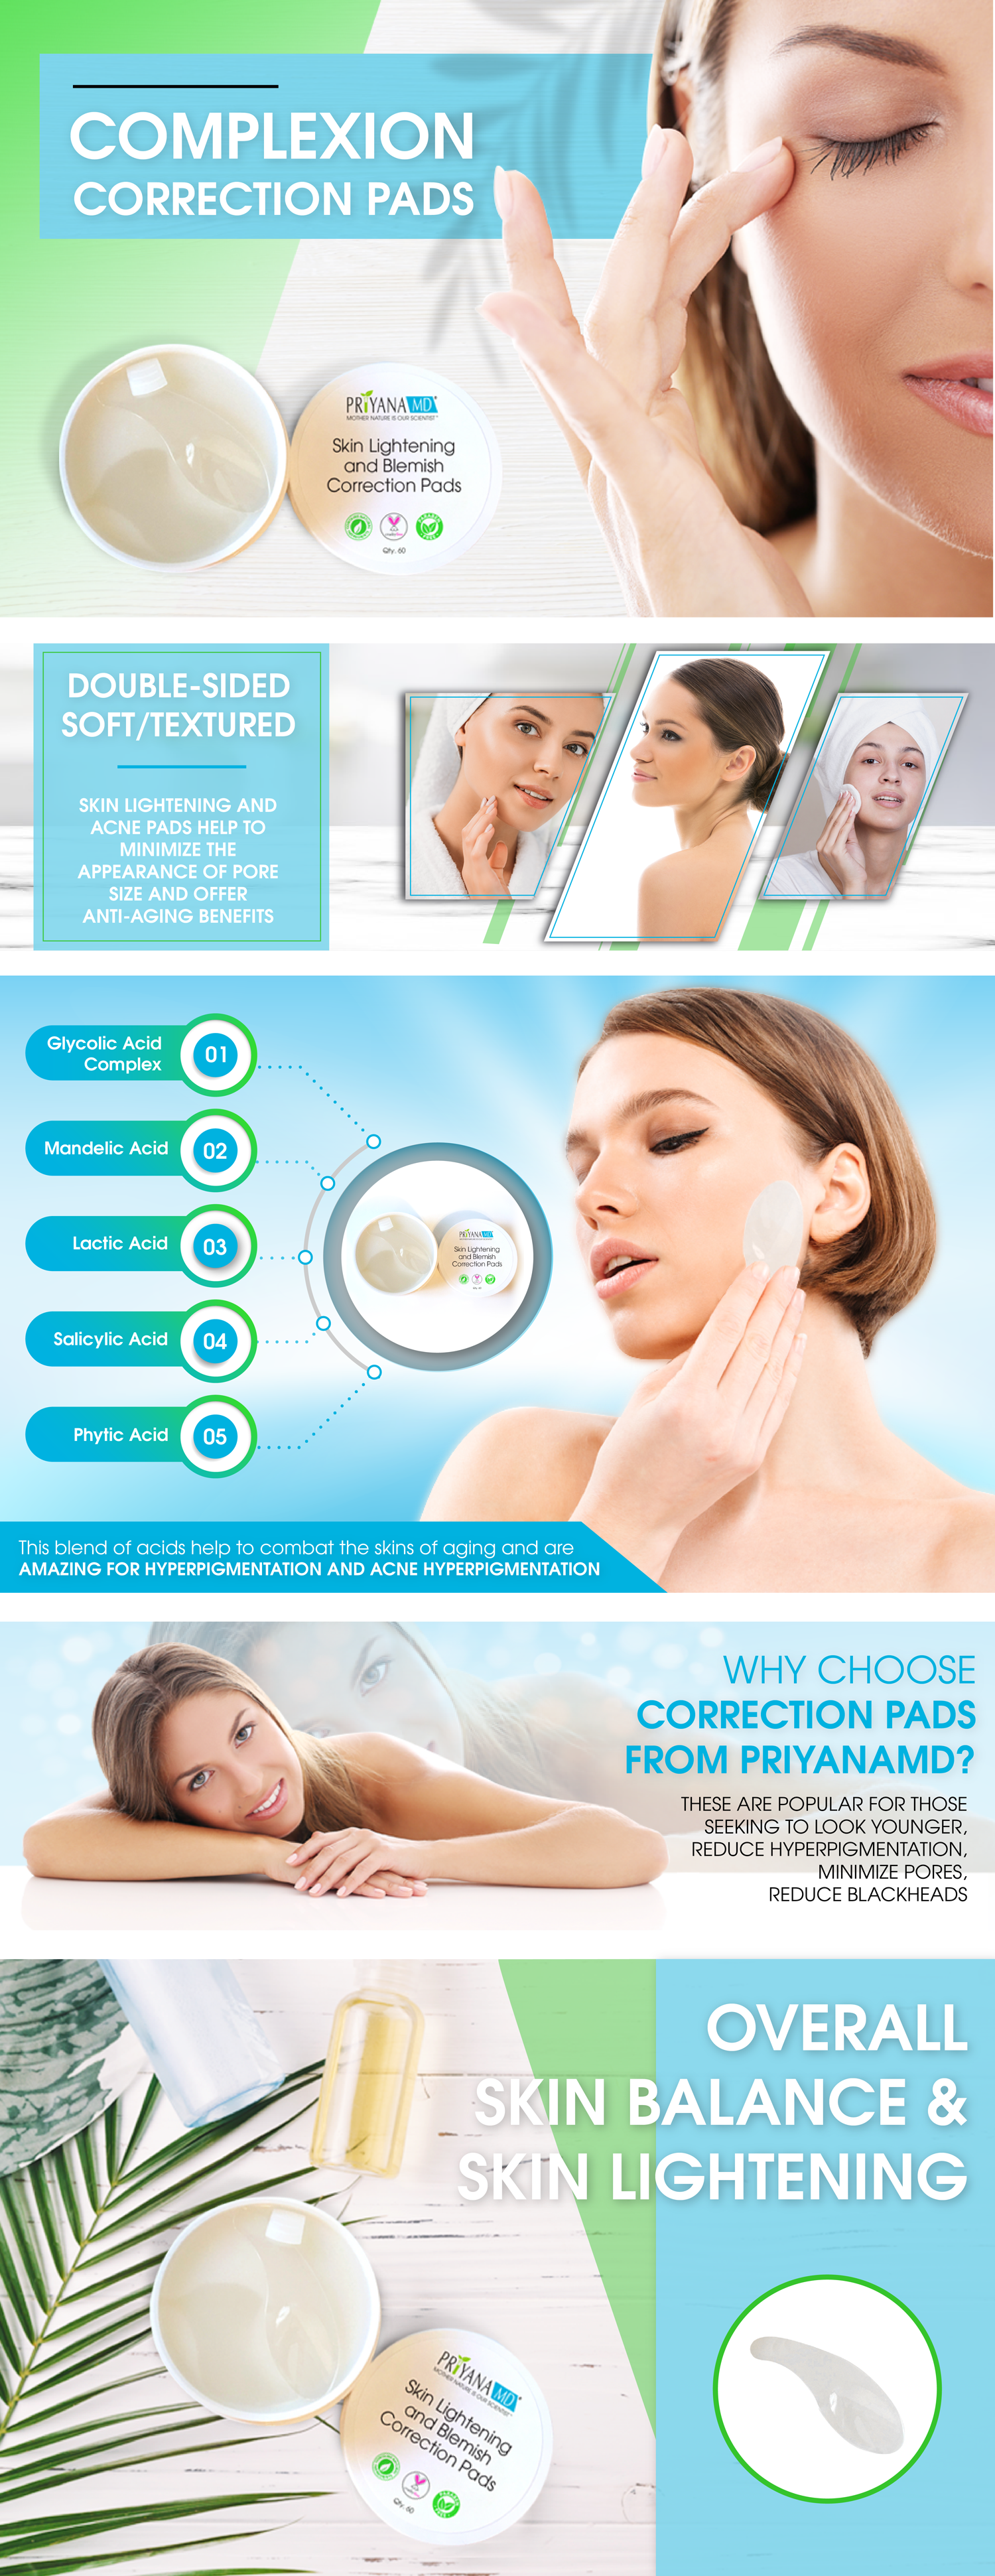 complexion-correction-pads-website.png